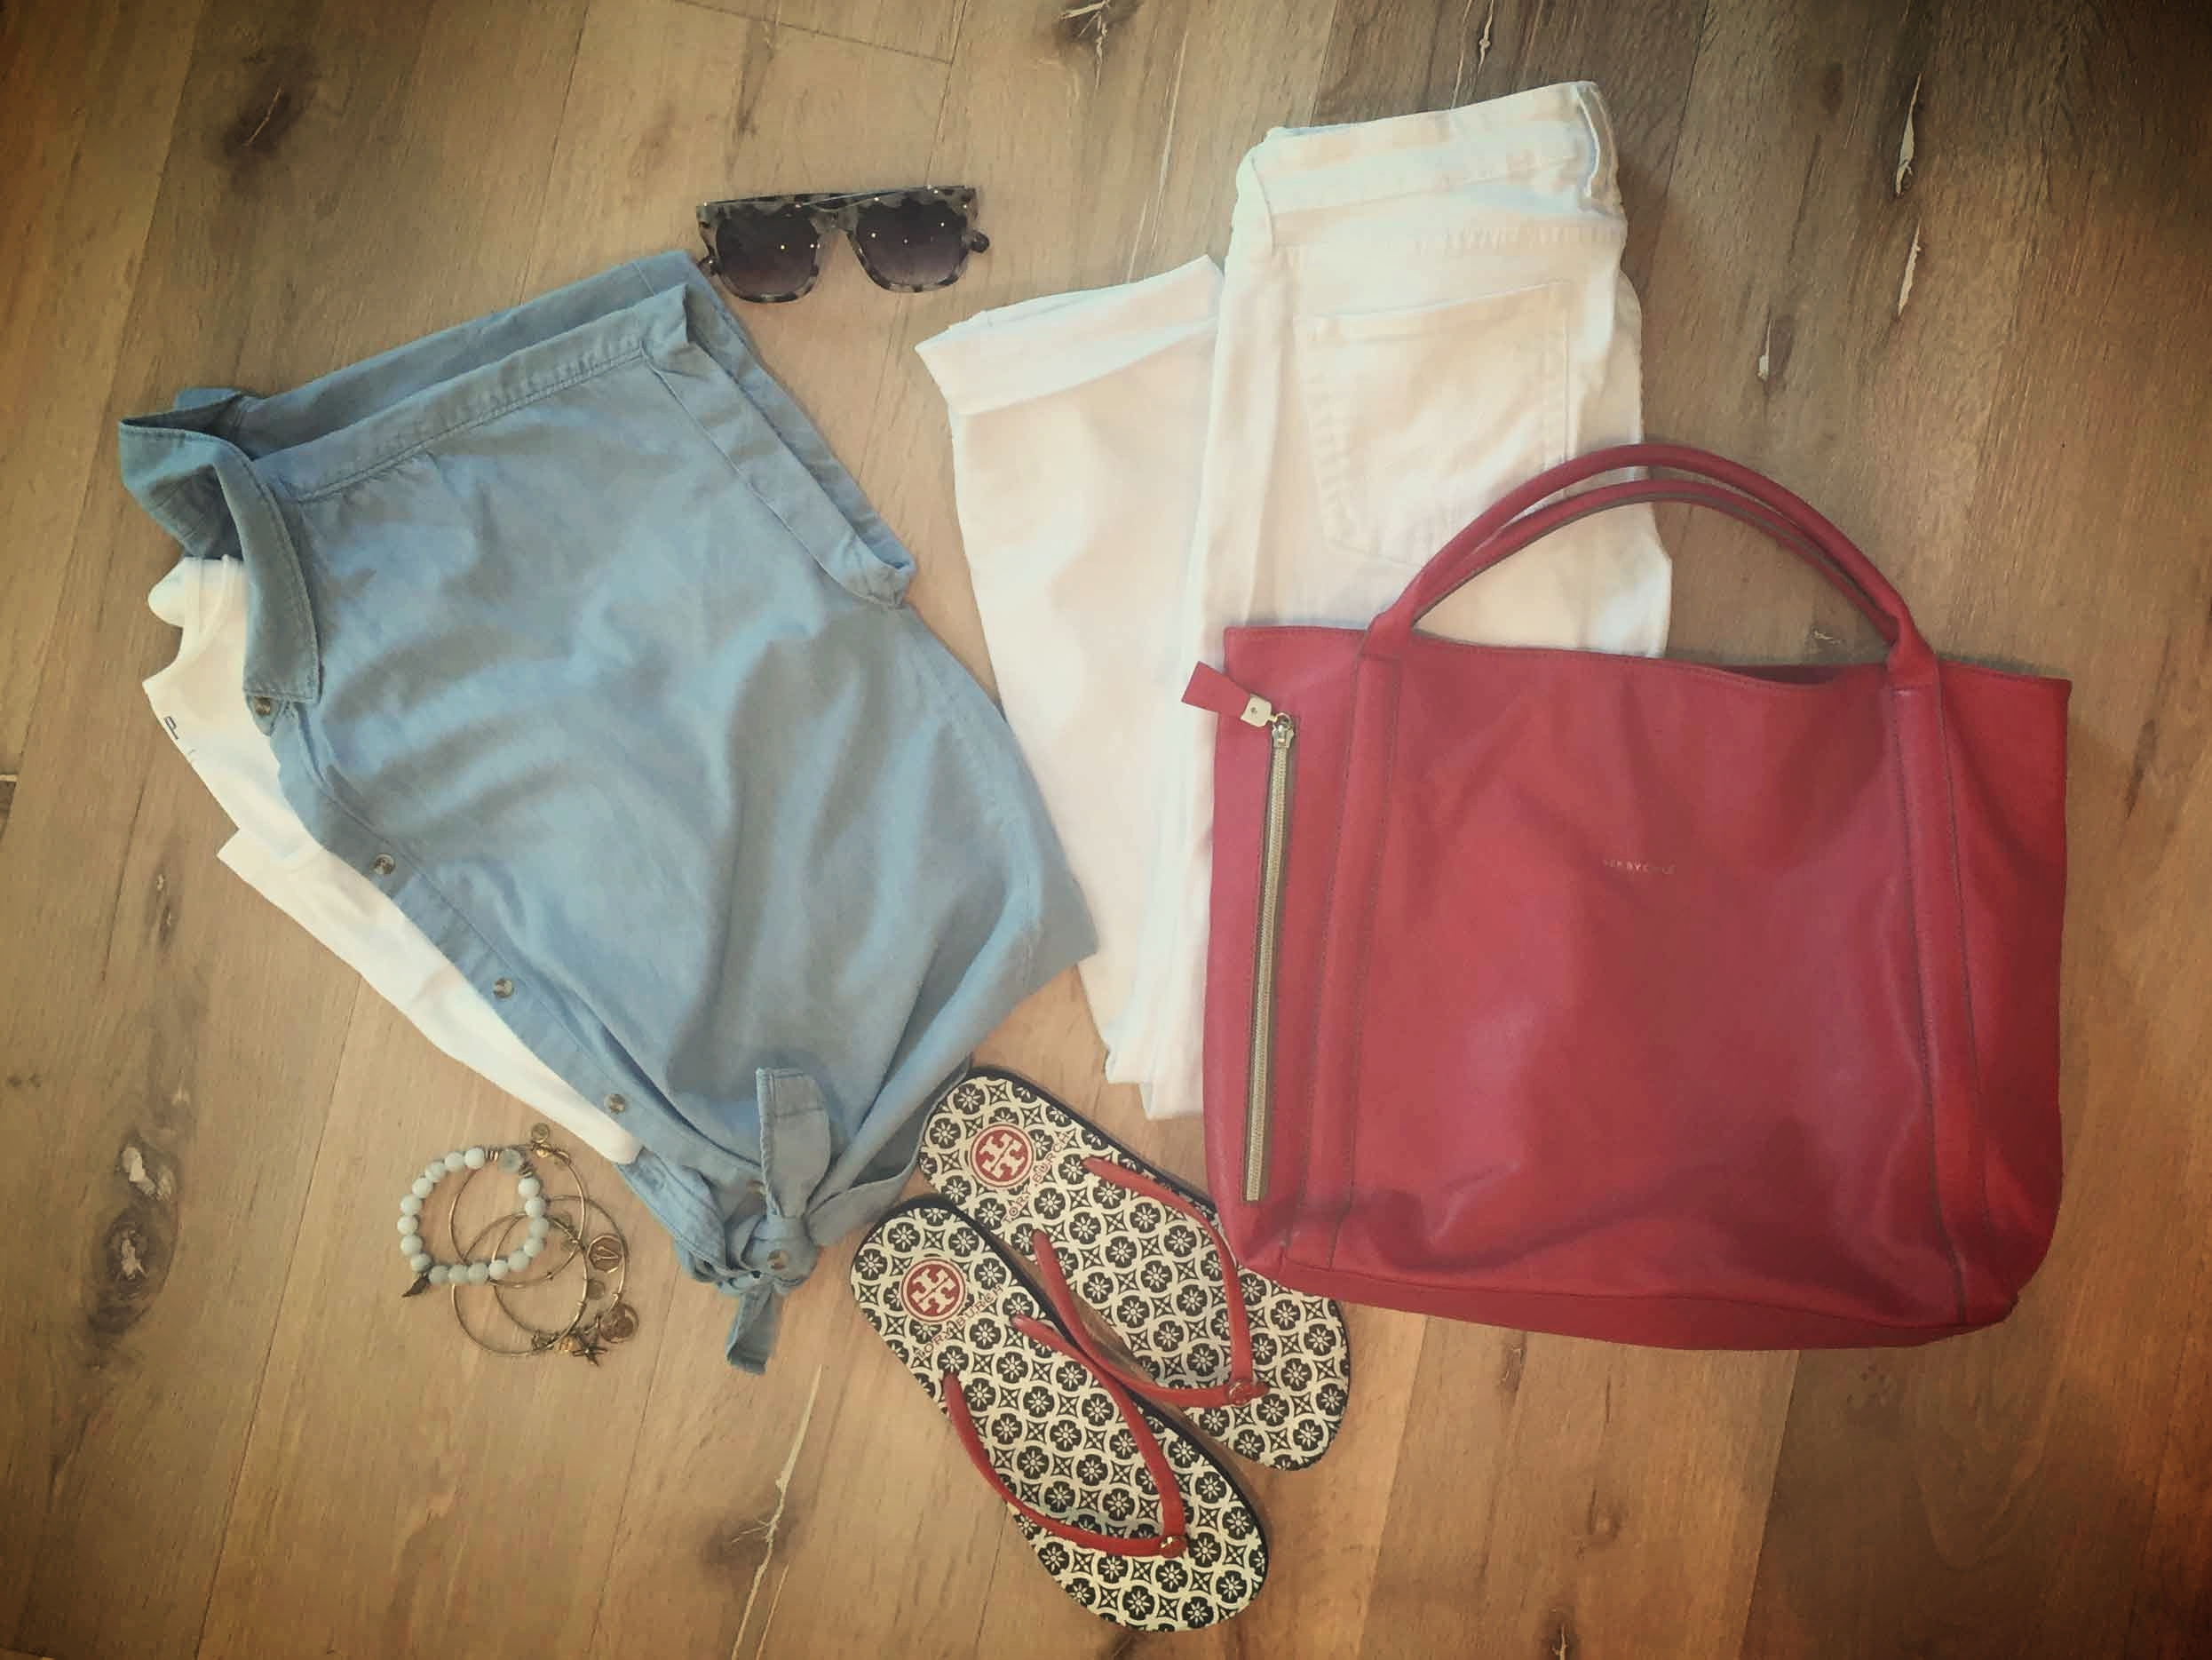 4th-july-outfit-2.JPG